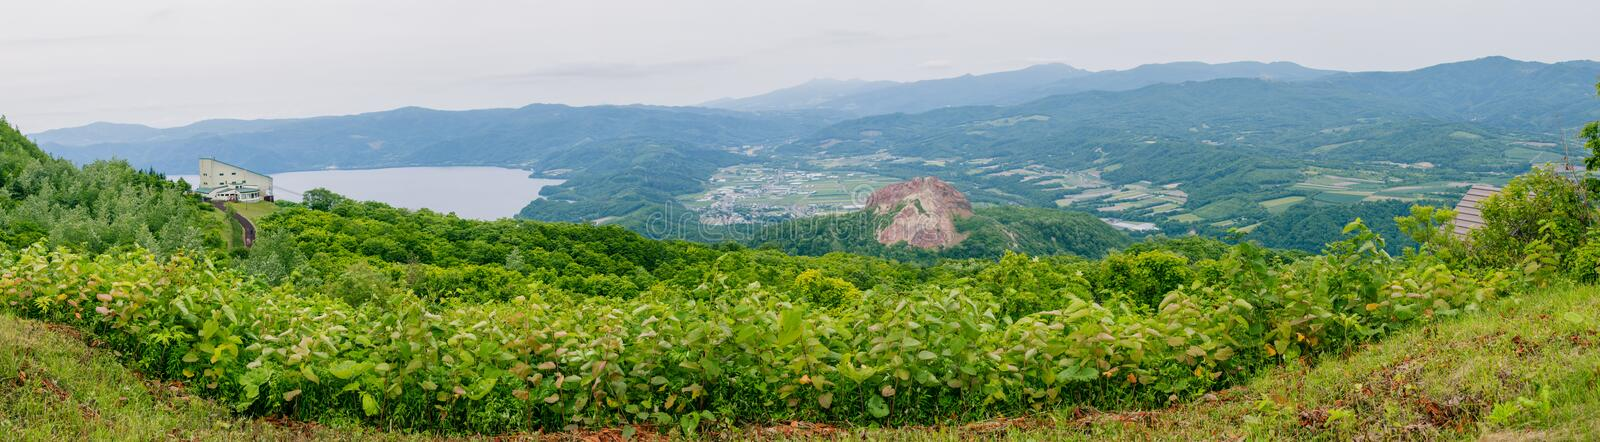 Panorama view from Viewpoint on Usu mountain at Hokkaido, Japan. This place include Showa Shinzan mountain and part of Lake Toya. Panorama view from Viewpoint stock image